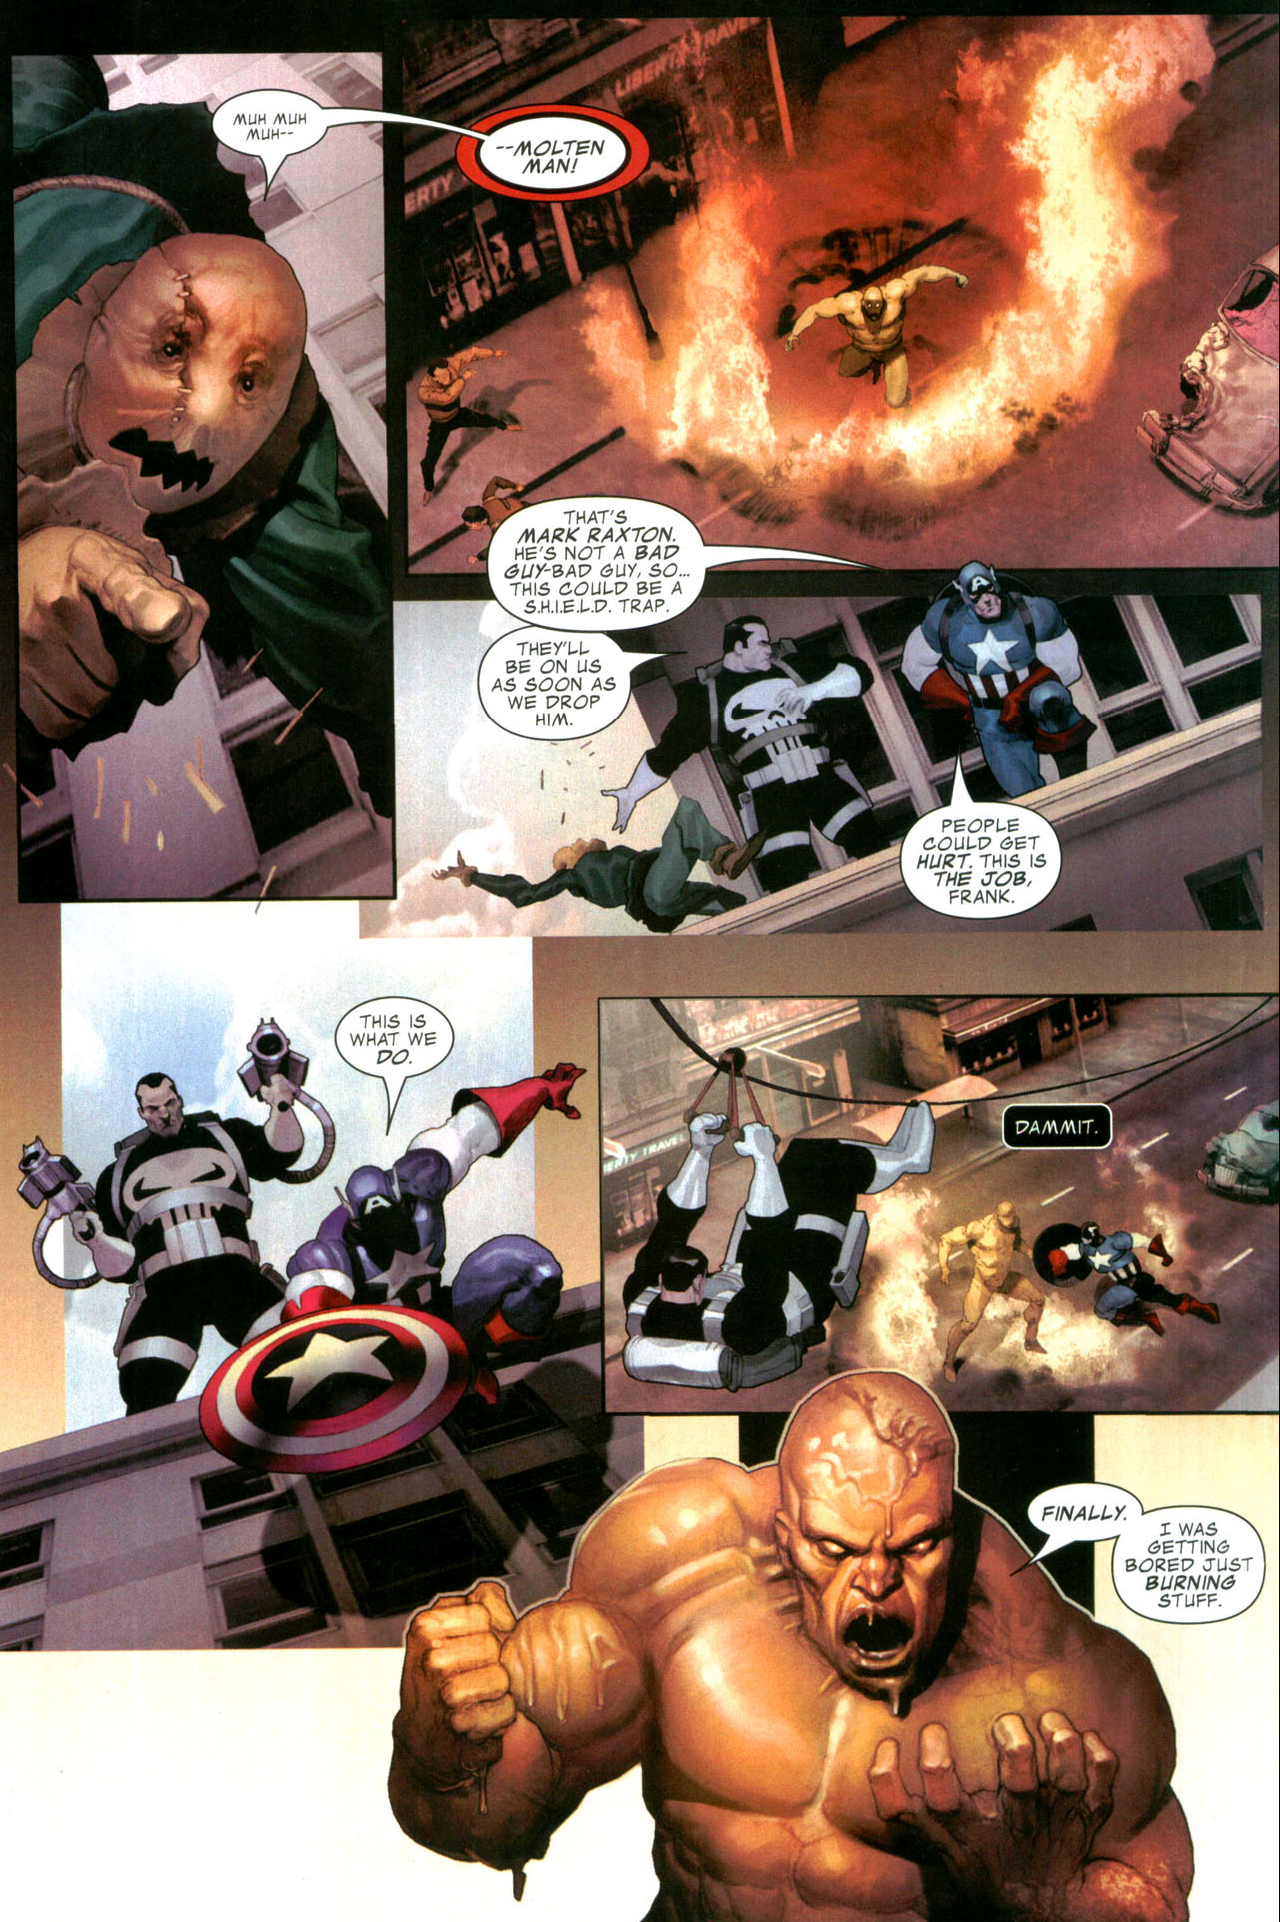 captain america and the punisher vs the molten man